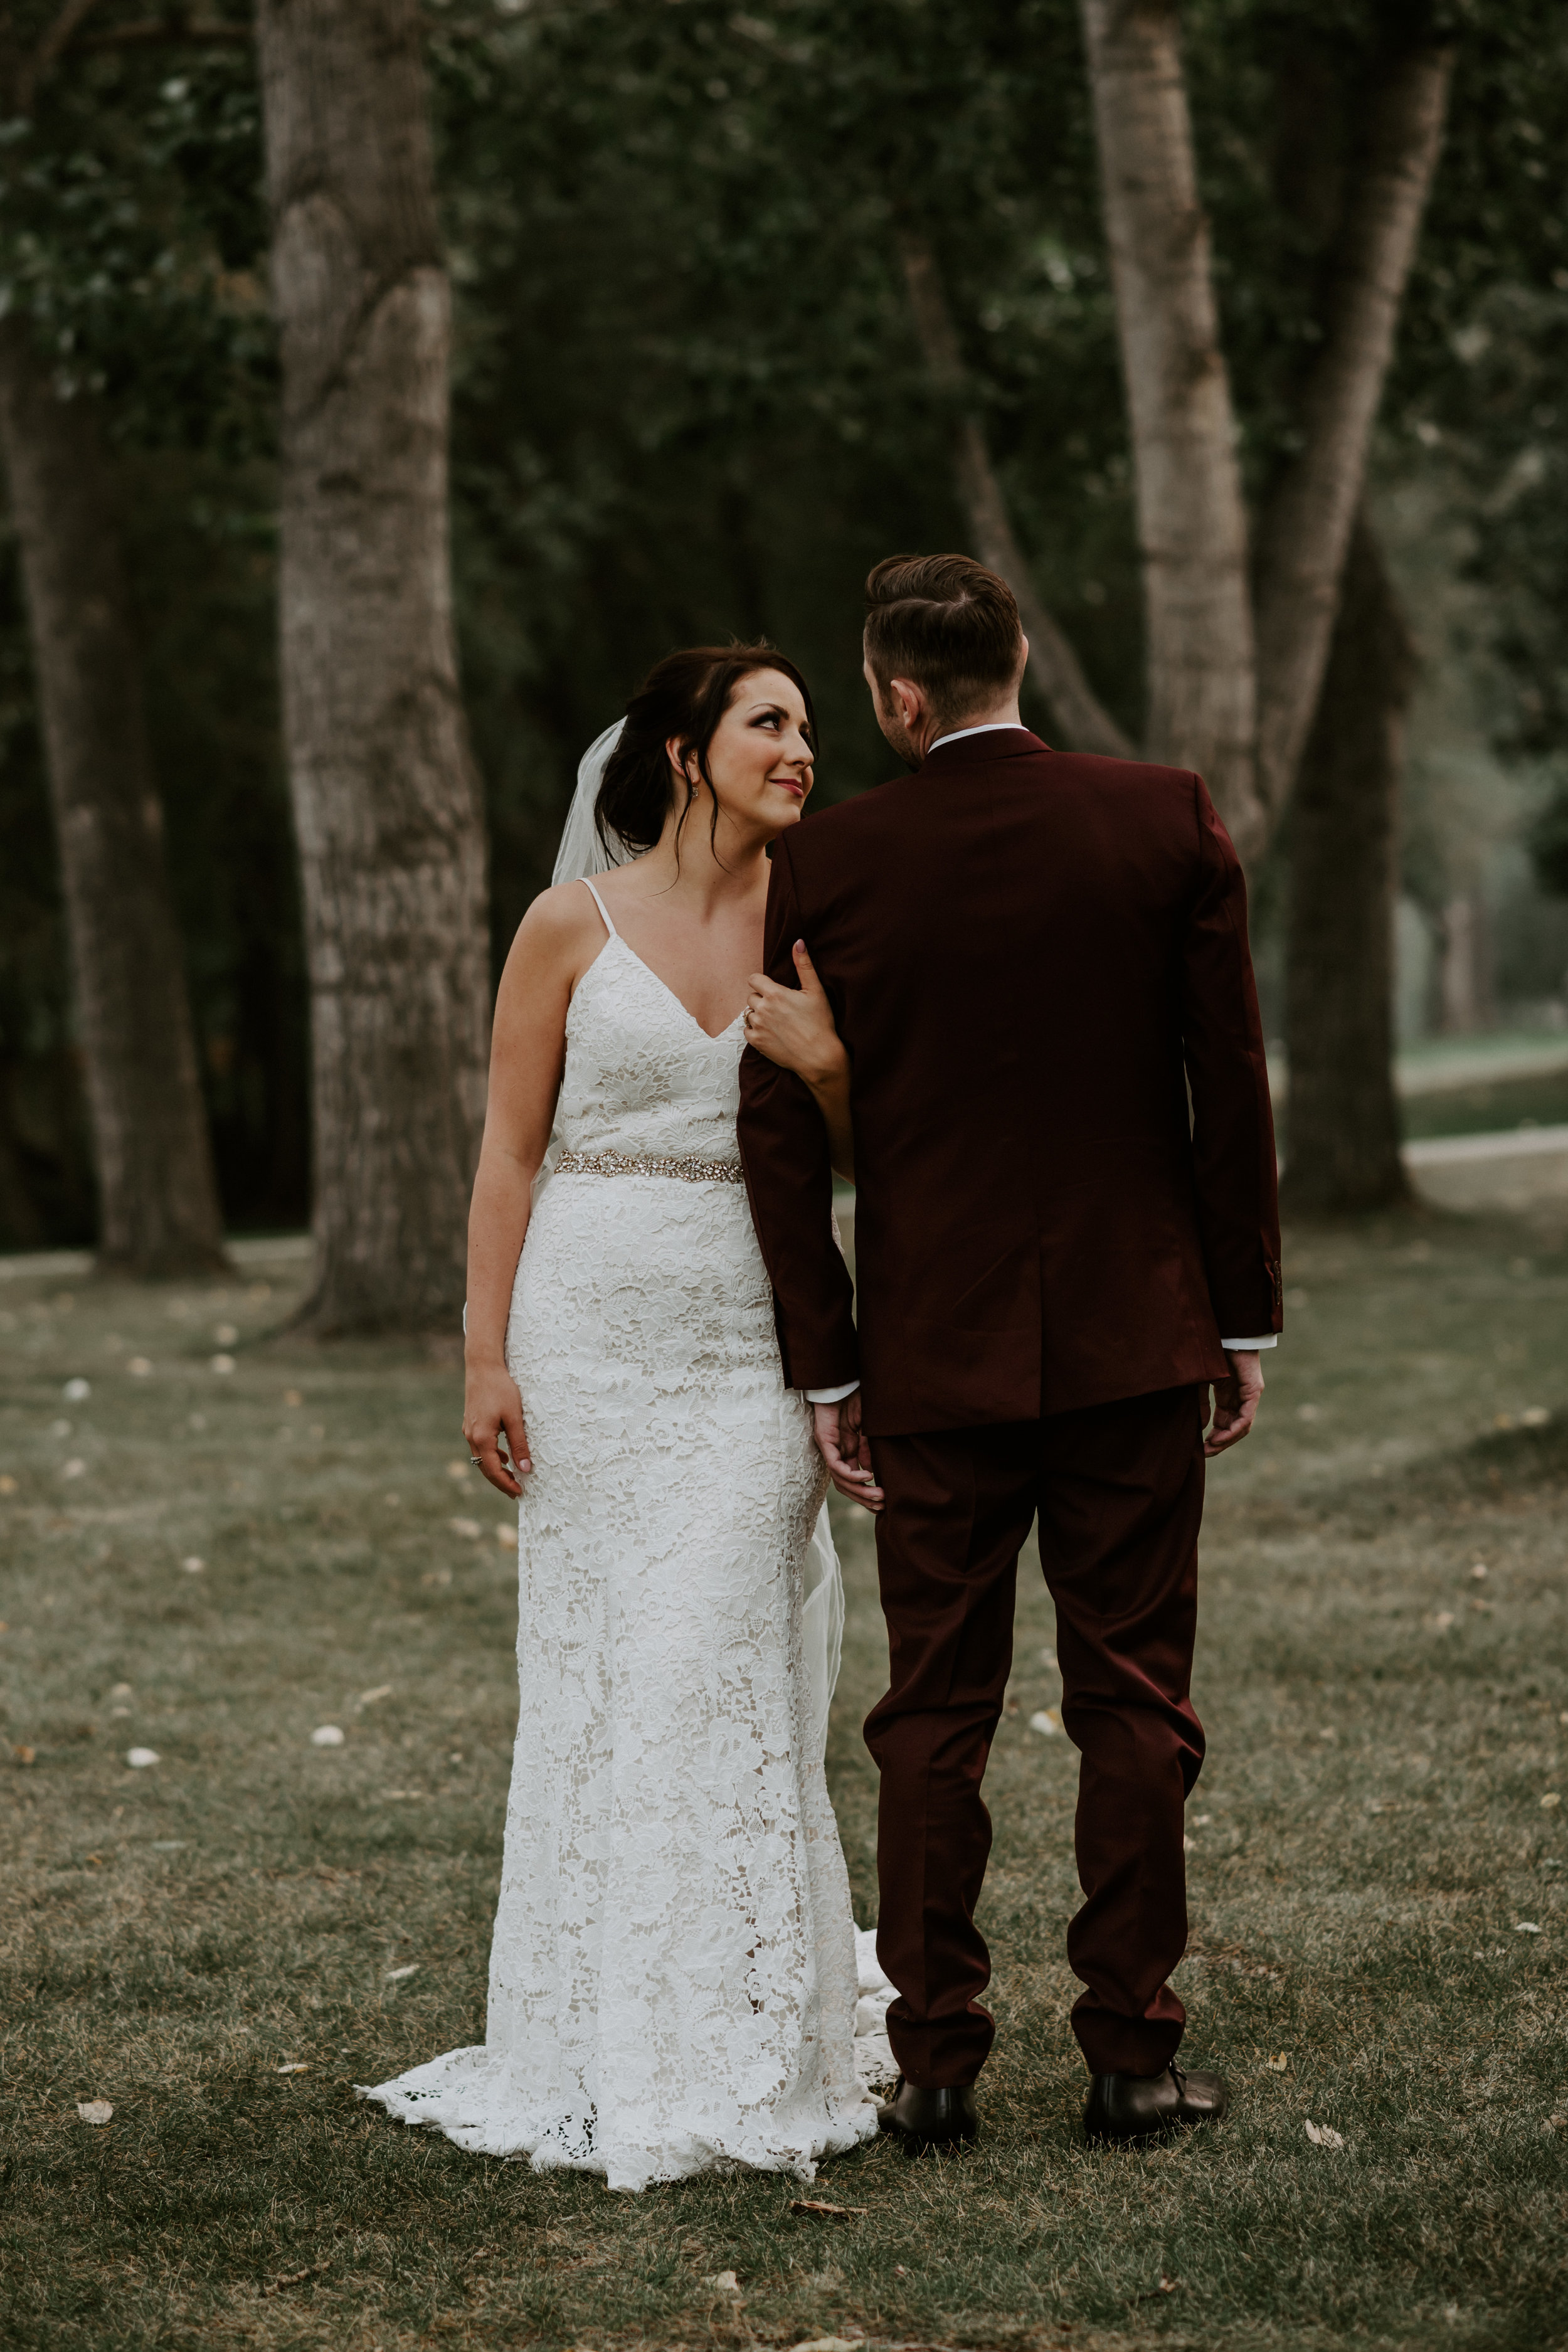 Calgary Wedding Photographer - 67 of 84.jpg